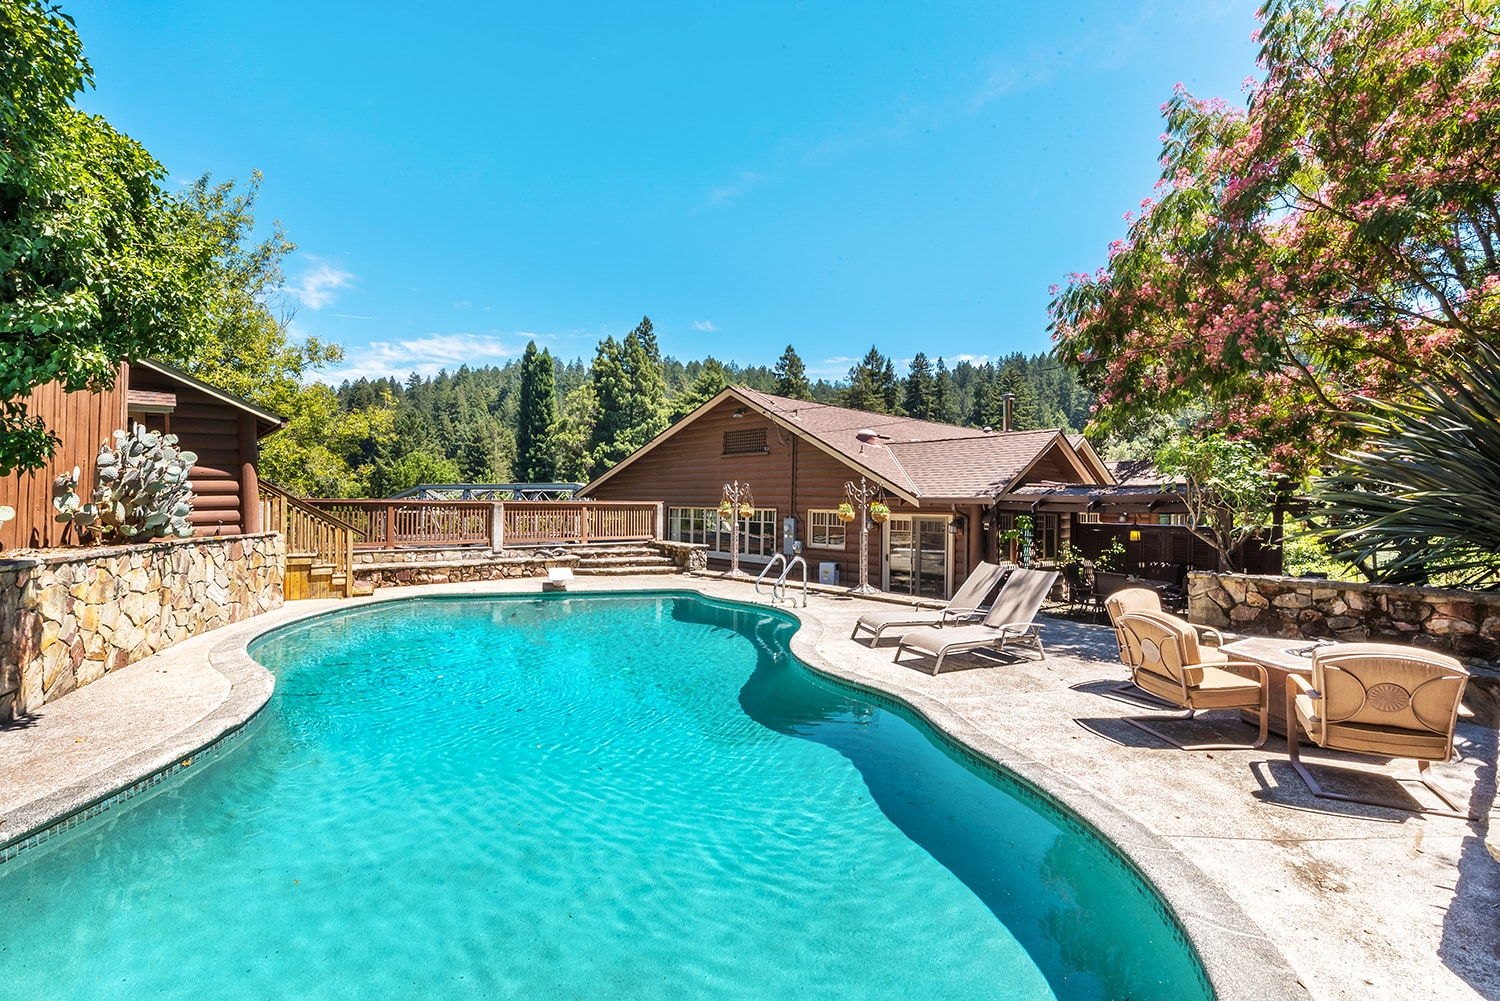 Welcome to Rocktop! Enjoy your classic lodge-style home with gorgeous private pool. Professionally managed by TurnKey Vacation Rentals.